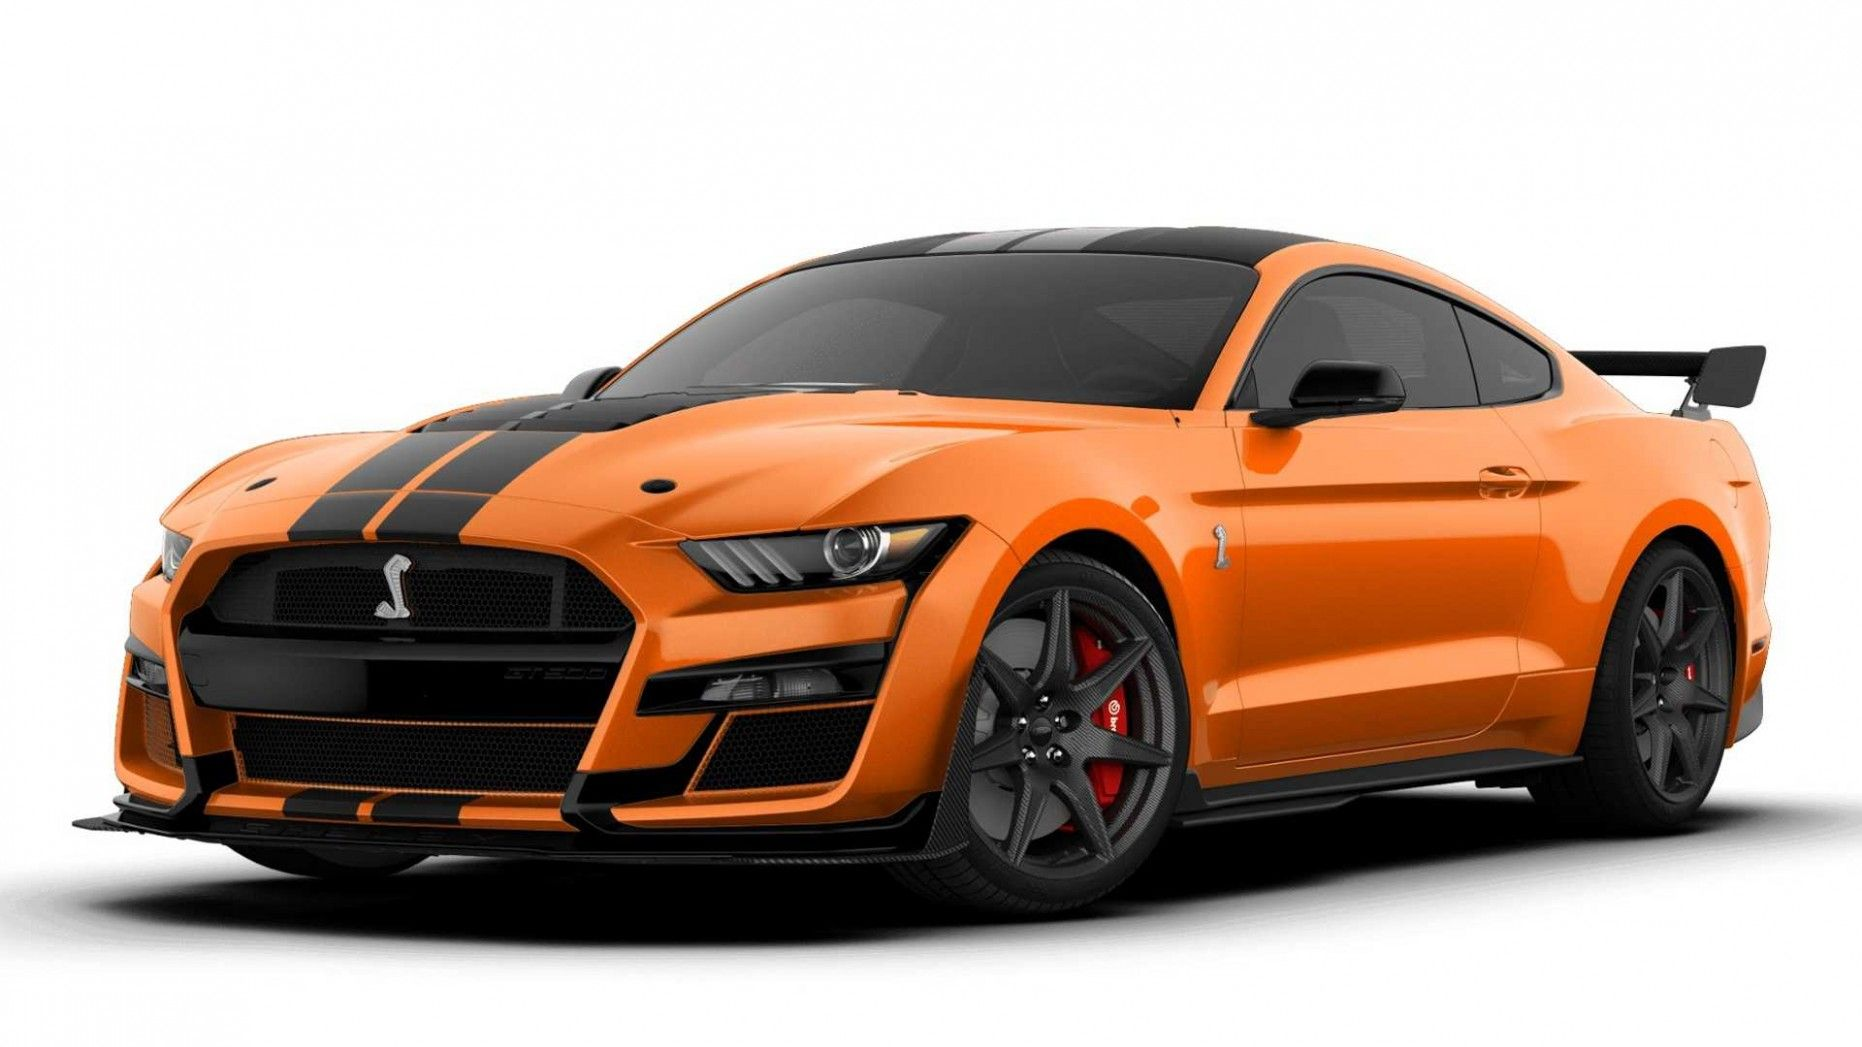 2021 The Spy Shots Ford Mustang Svt Gt 500 Price, Design and Review